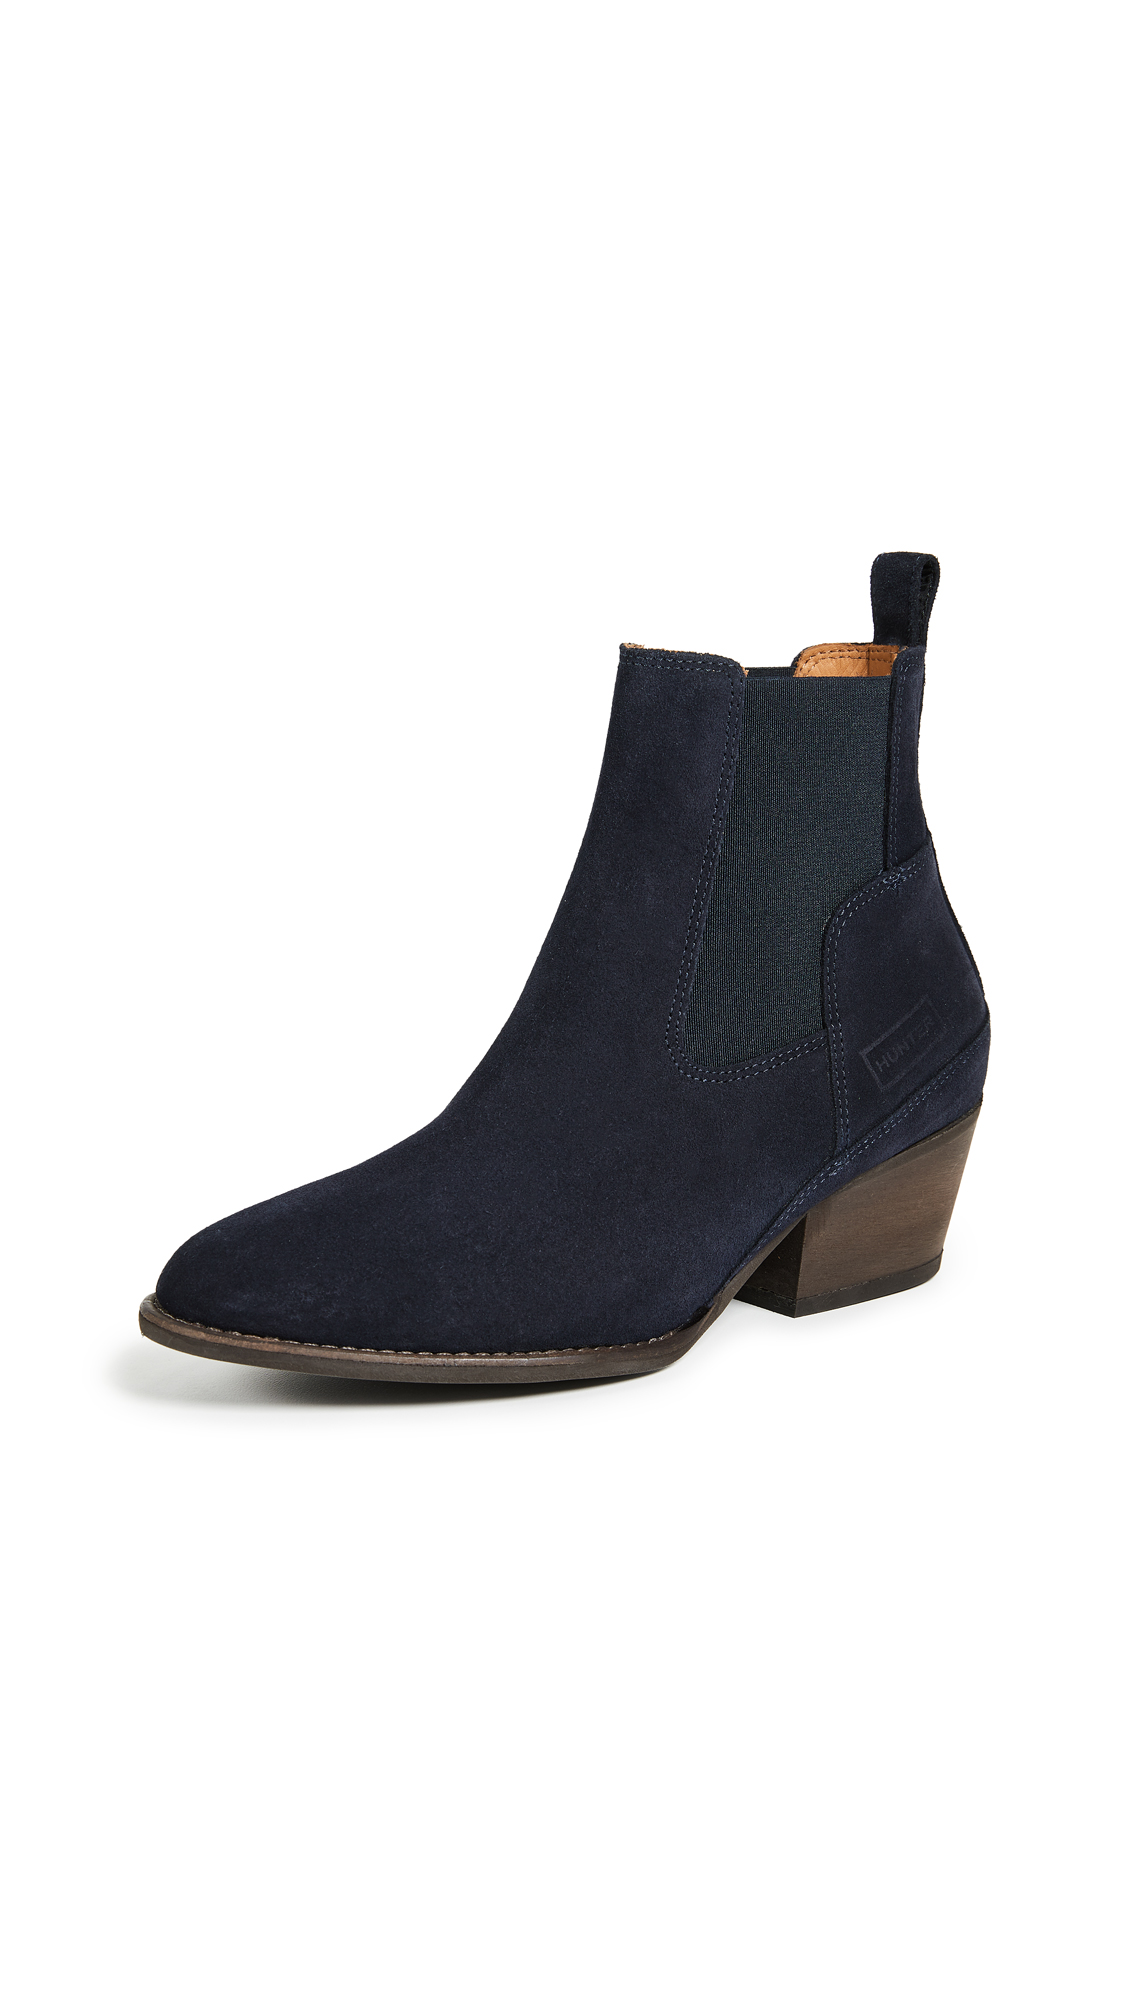 Hunter Boots Refined Chelsea Boots - Navy